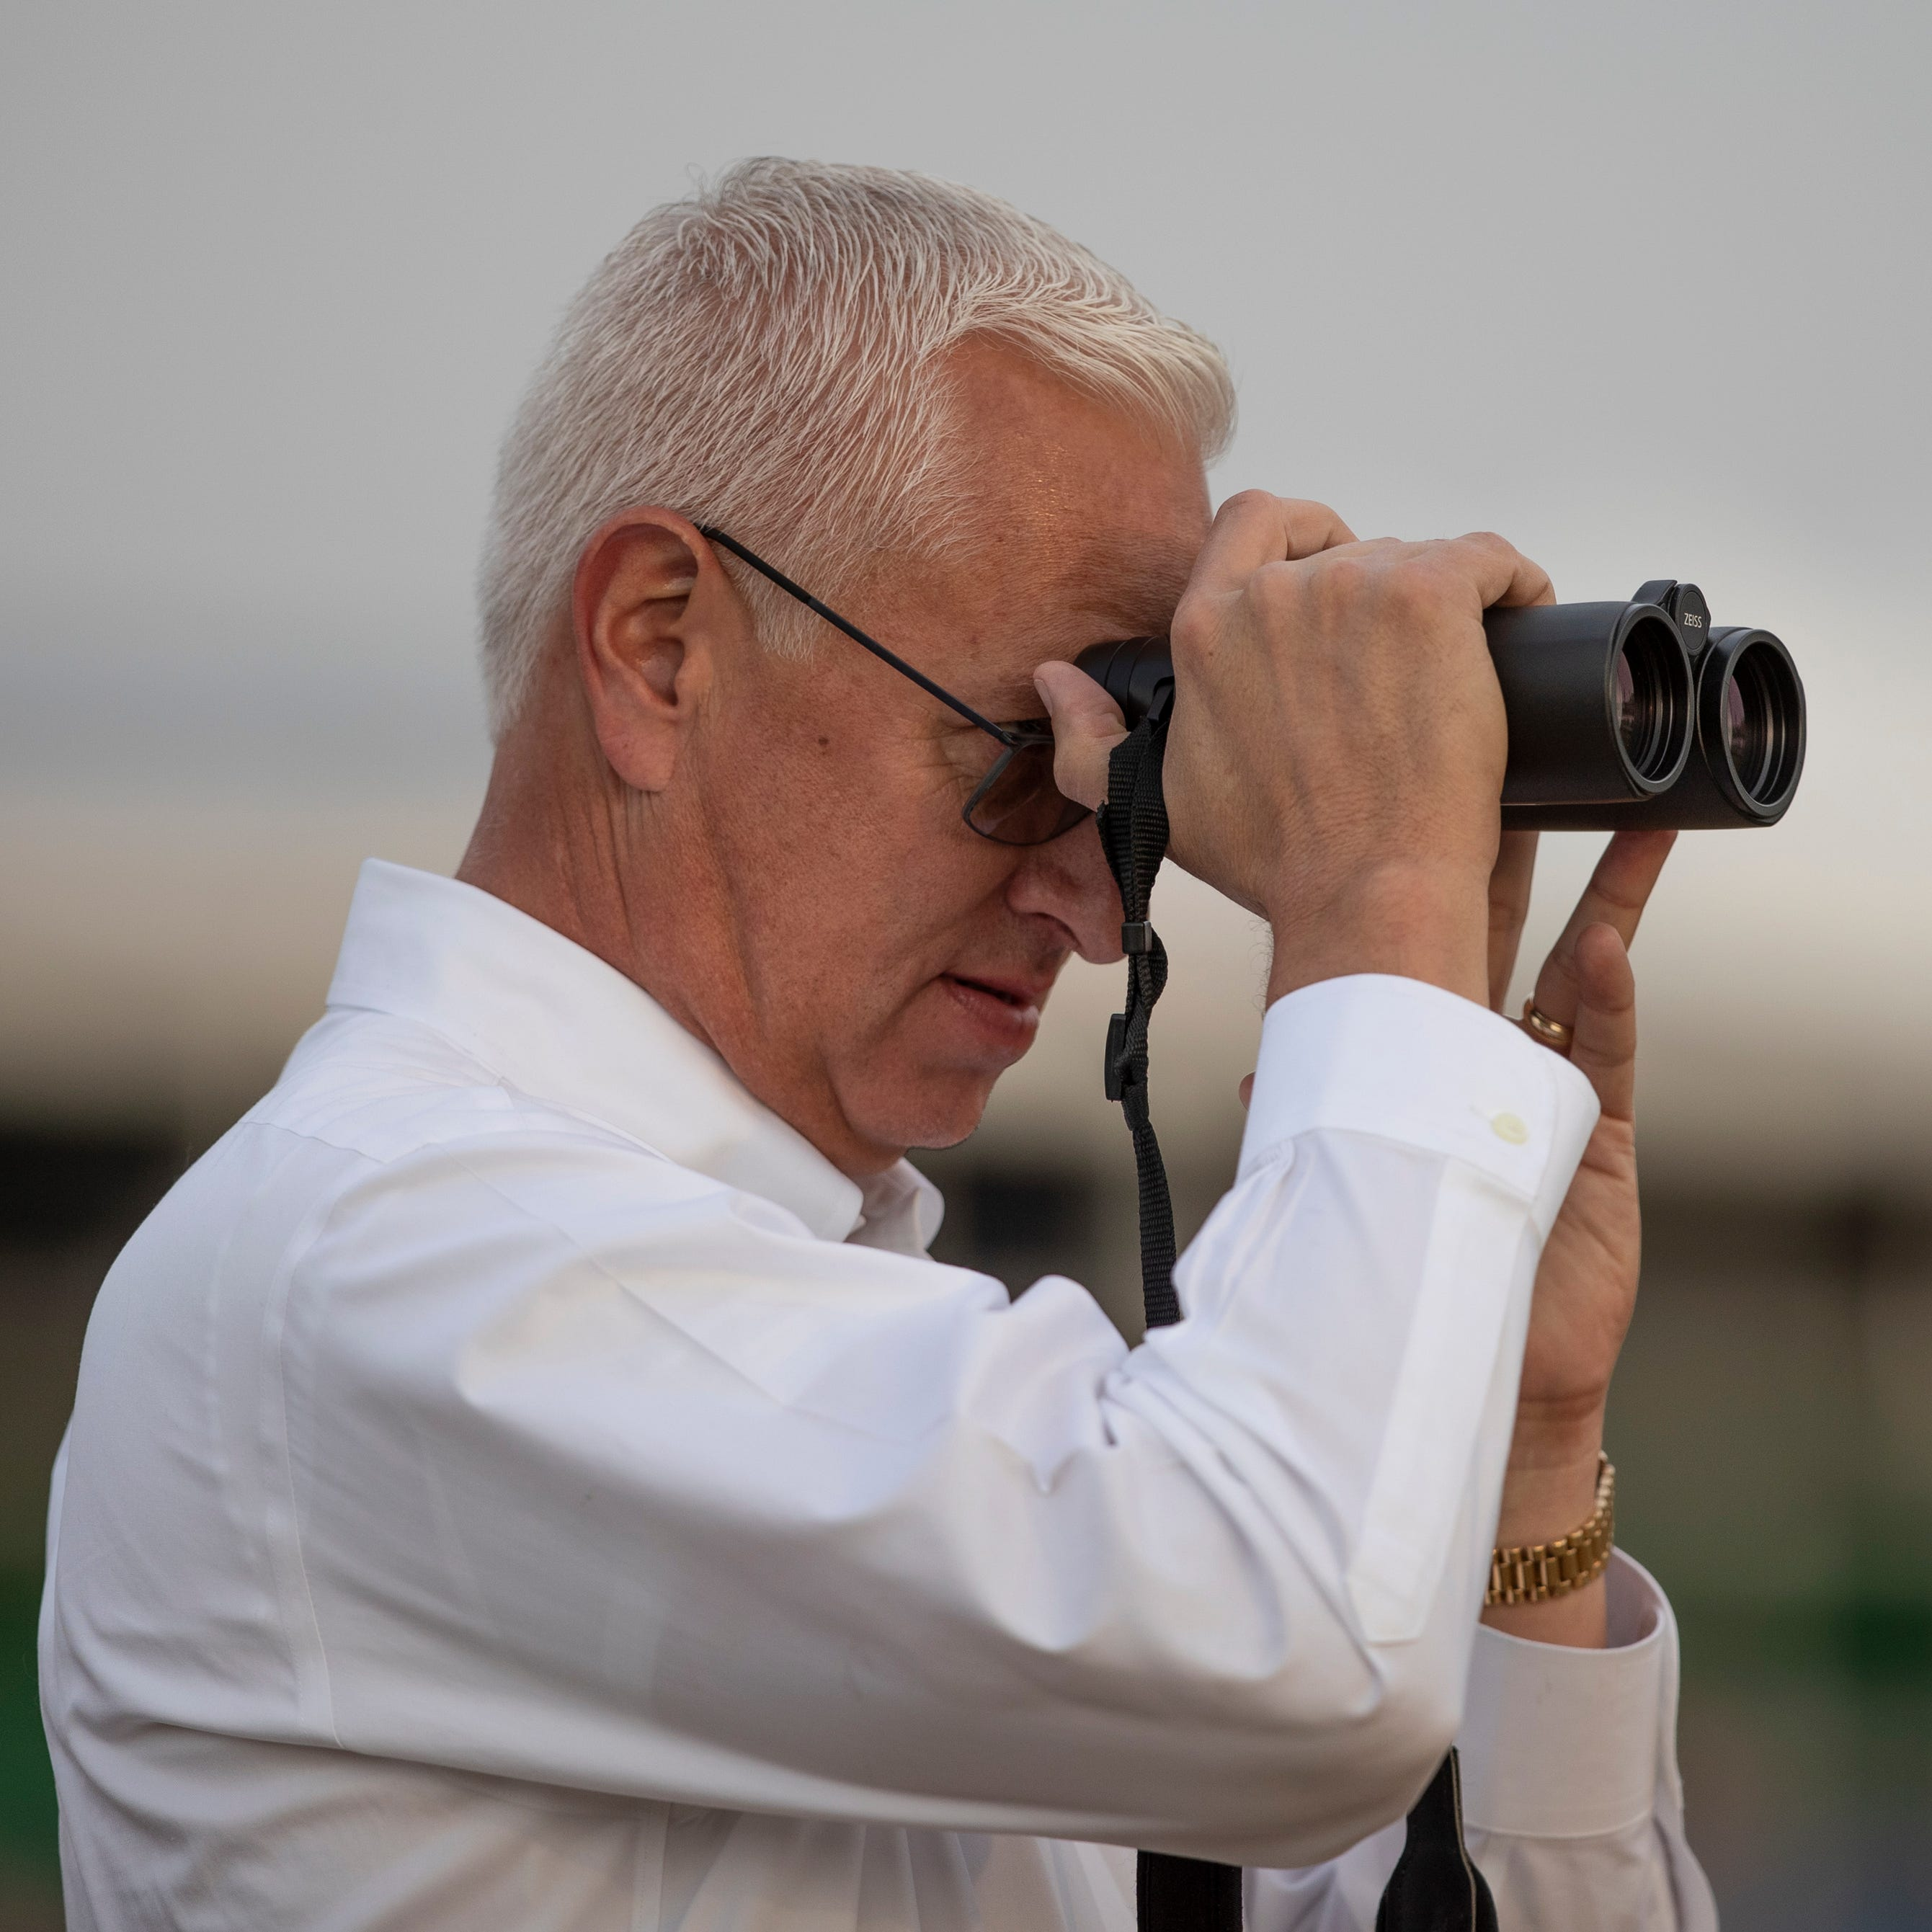 Todd Pletcher on Kentucky Derby disqualification: 'The stewards did the correct thing'